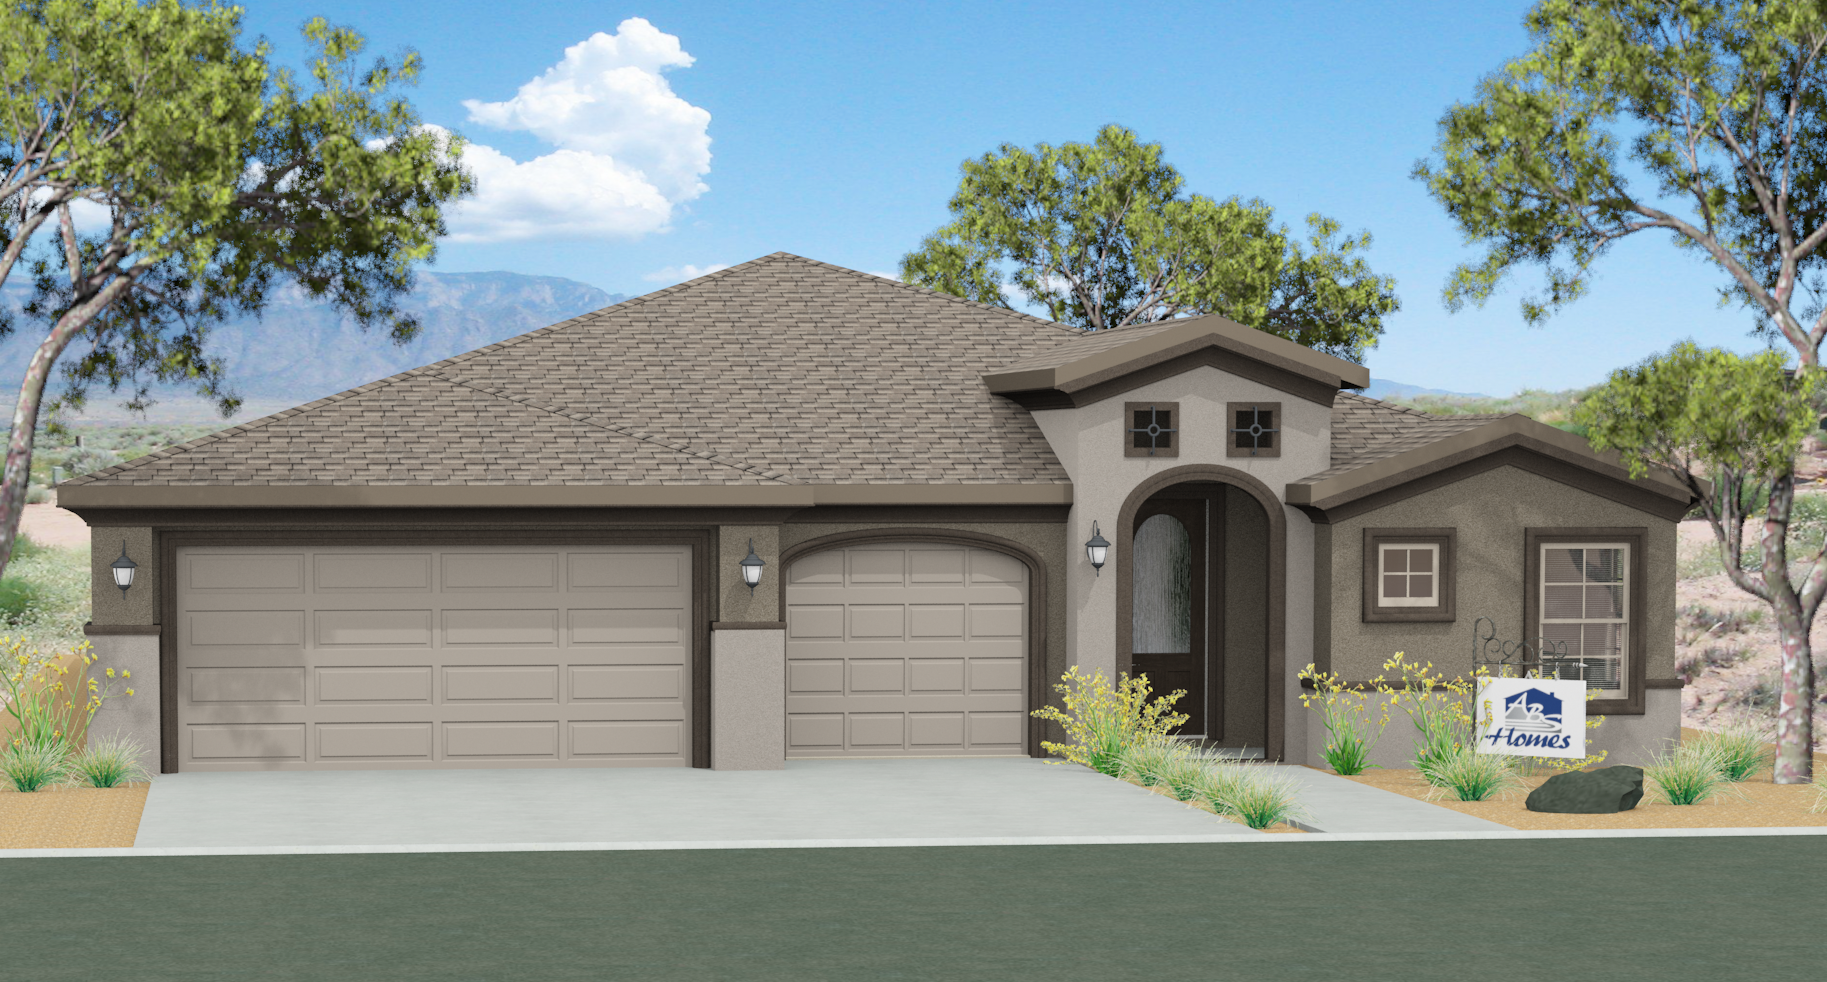 2589 Garage Scheme-4 Stucco